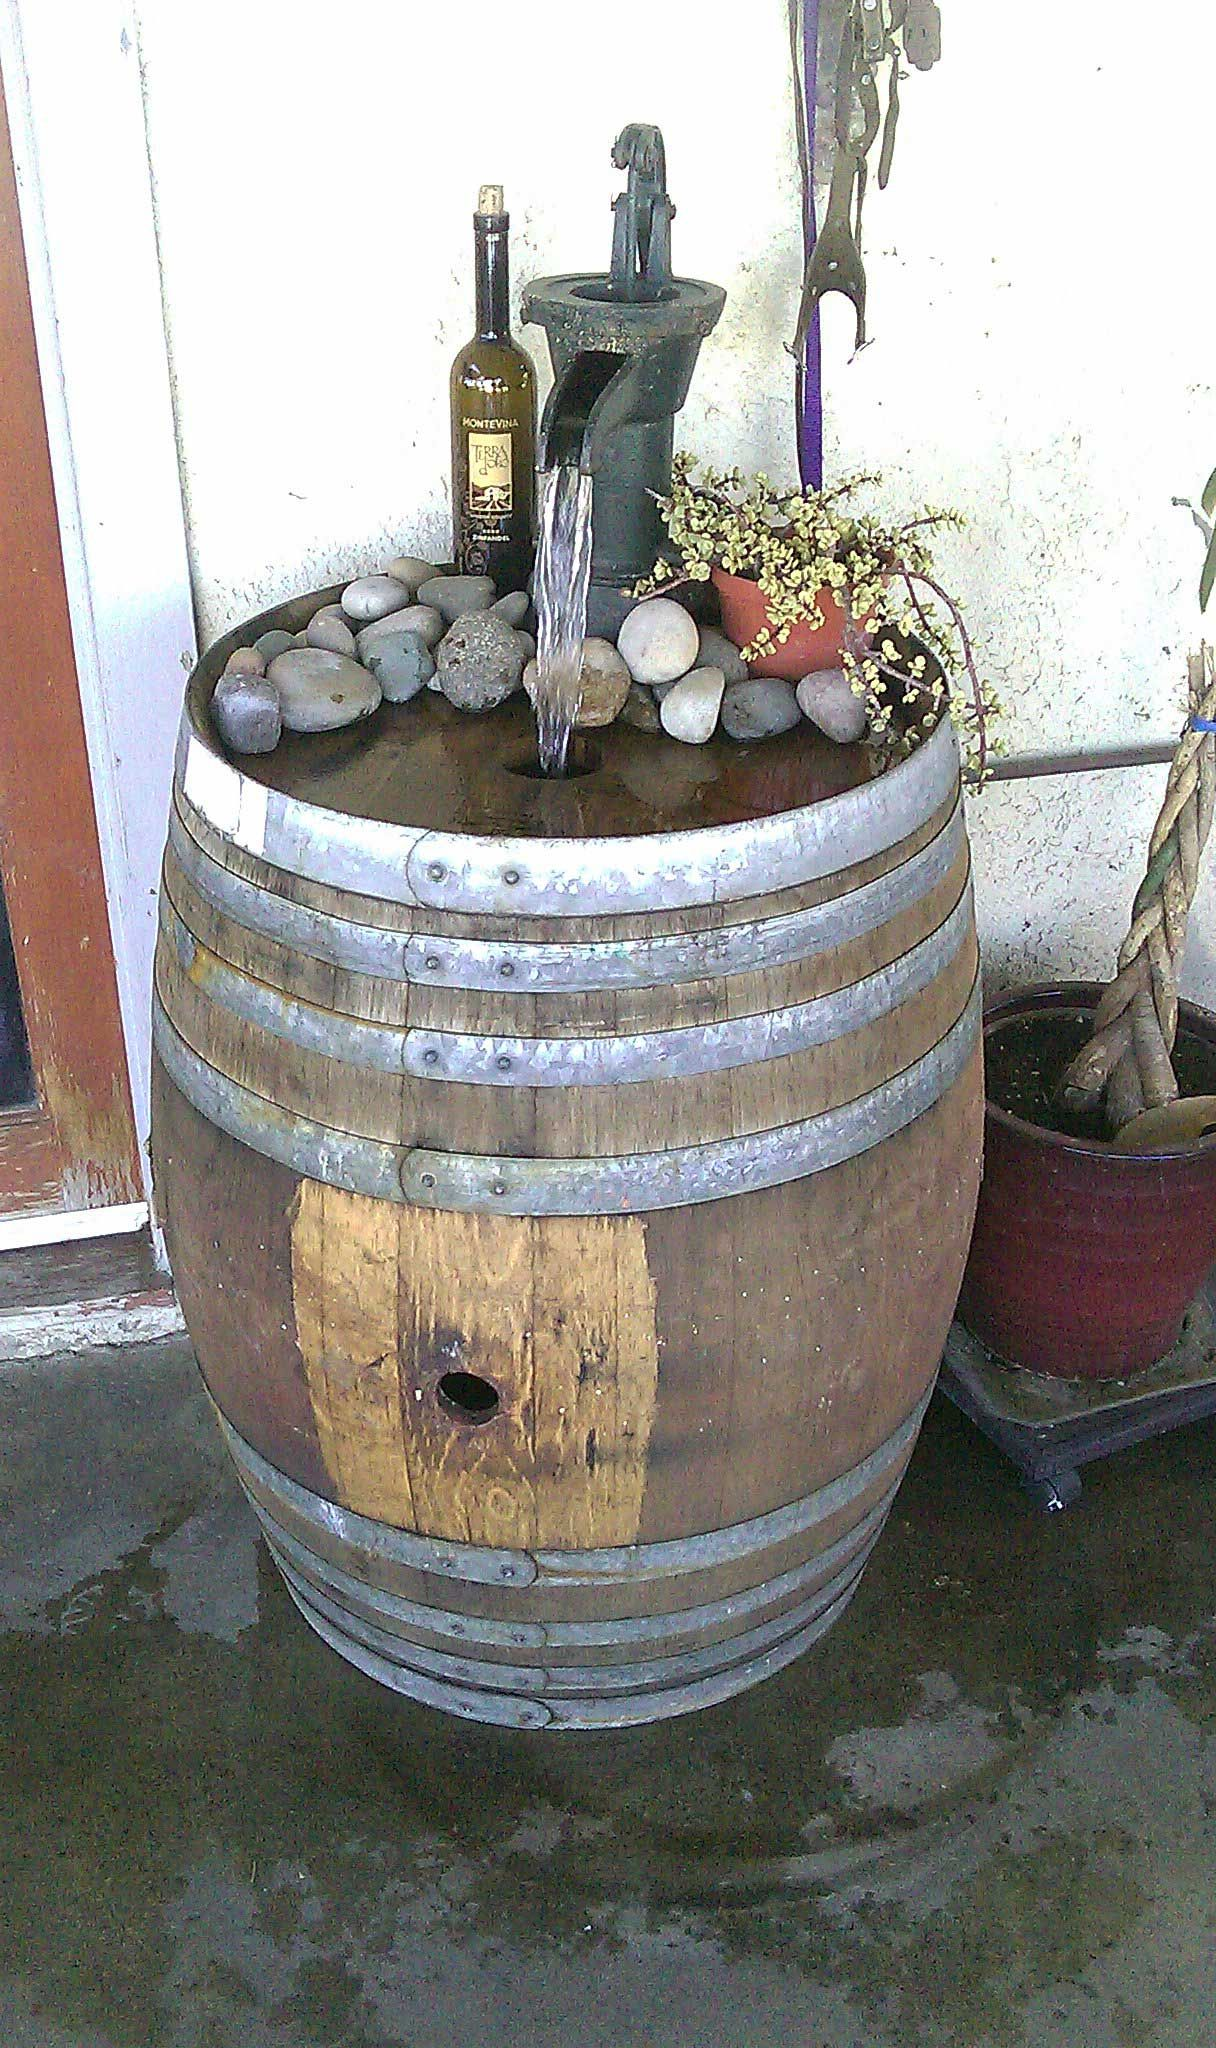 Pin By Jessica On Homestyle Barrel Fountain Wine Barrel Water Feature Barrel Decor